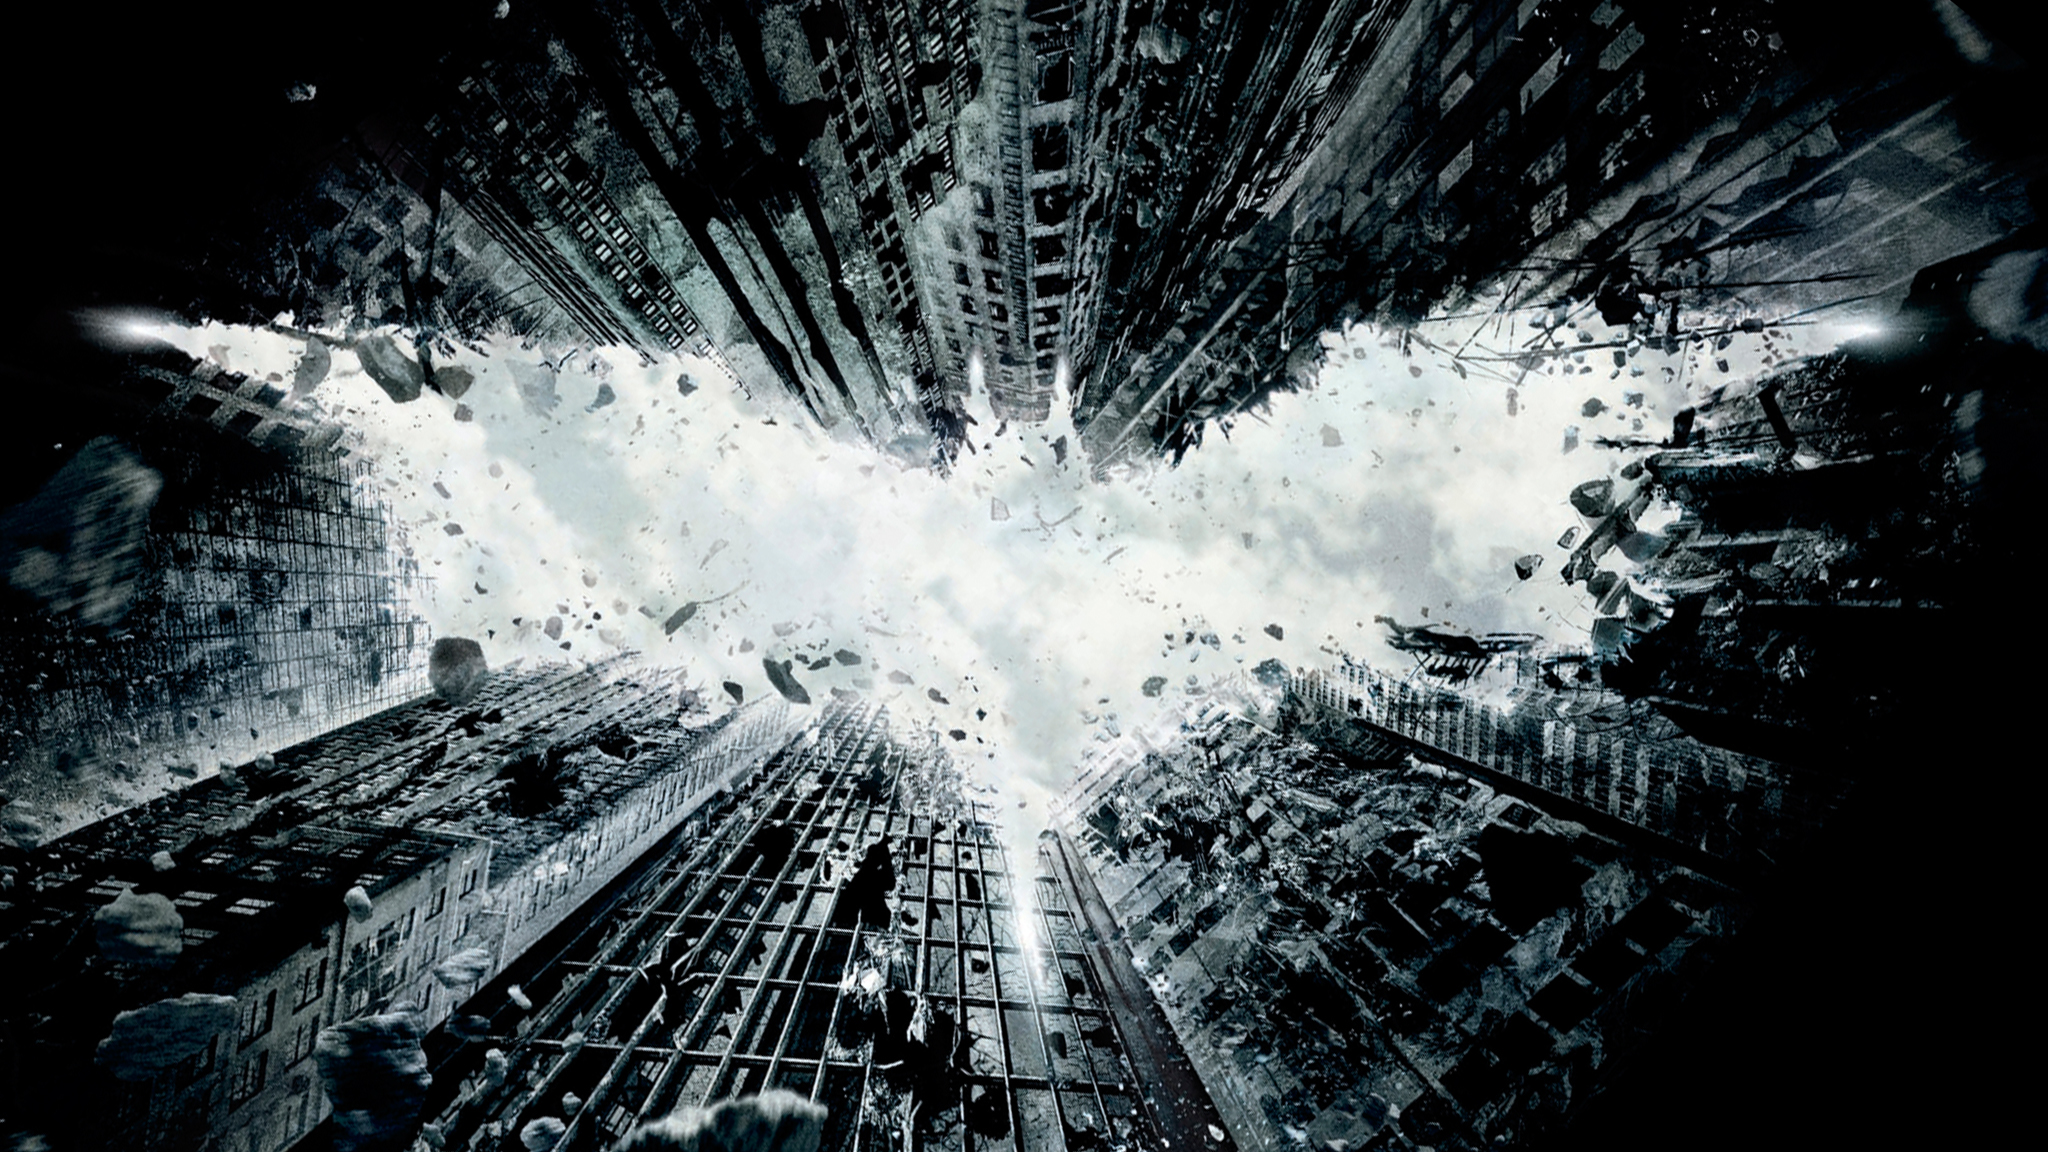 201 The Dark Knight Rises Hd Wallpapers  Backgrounds